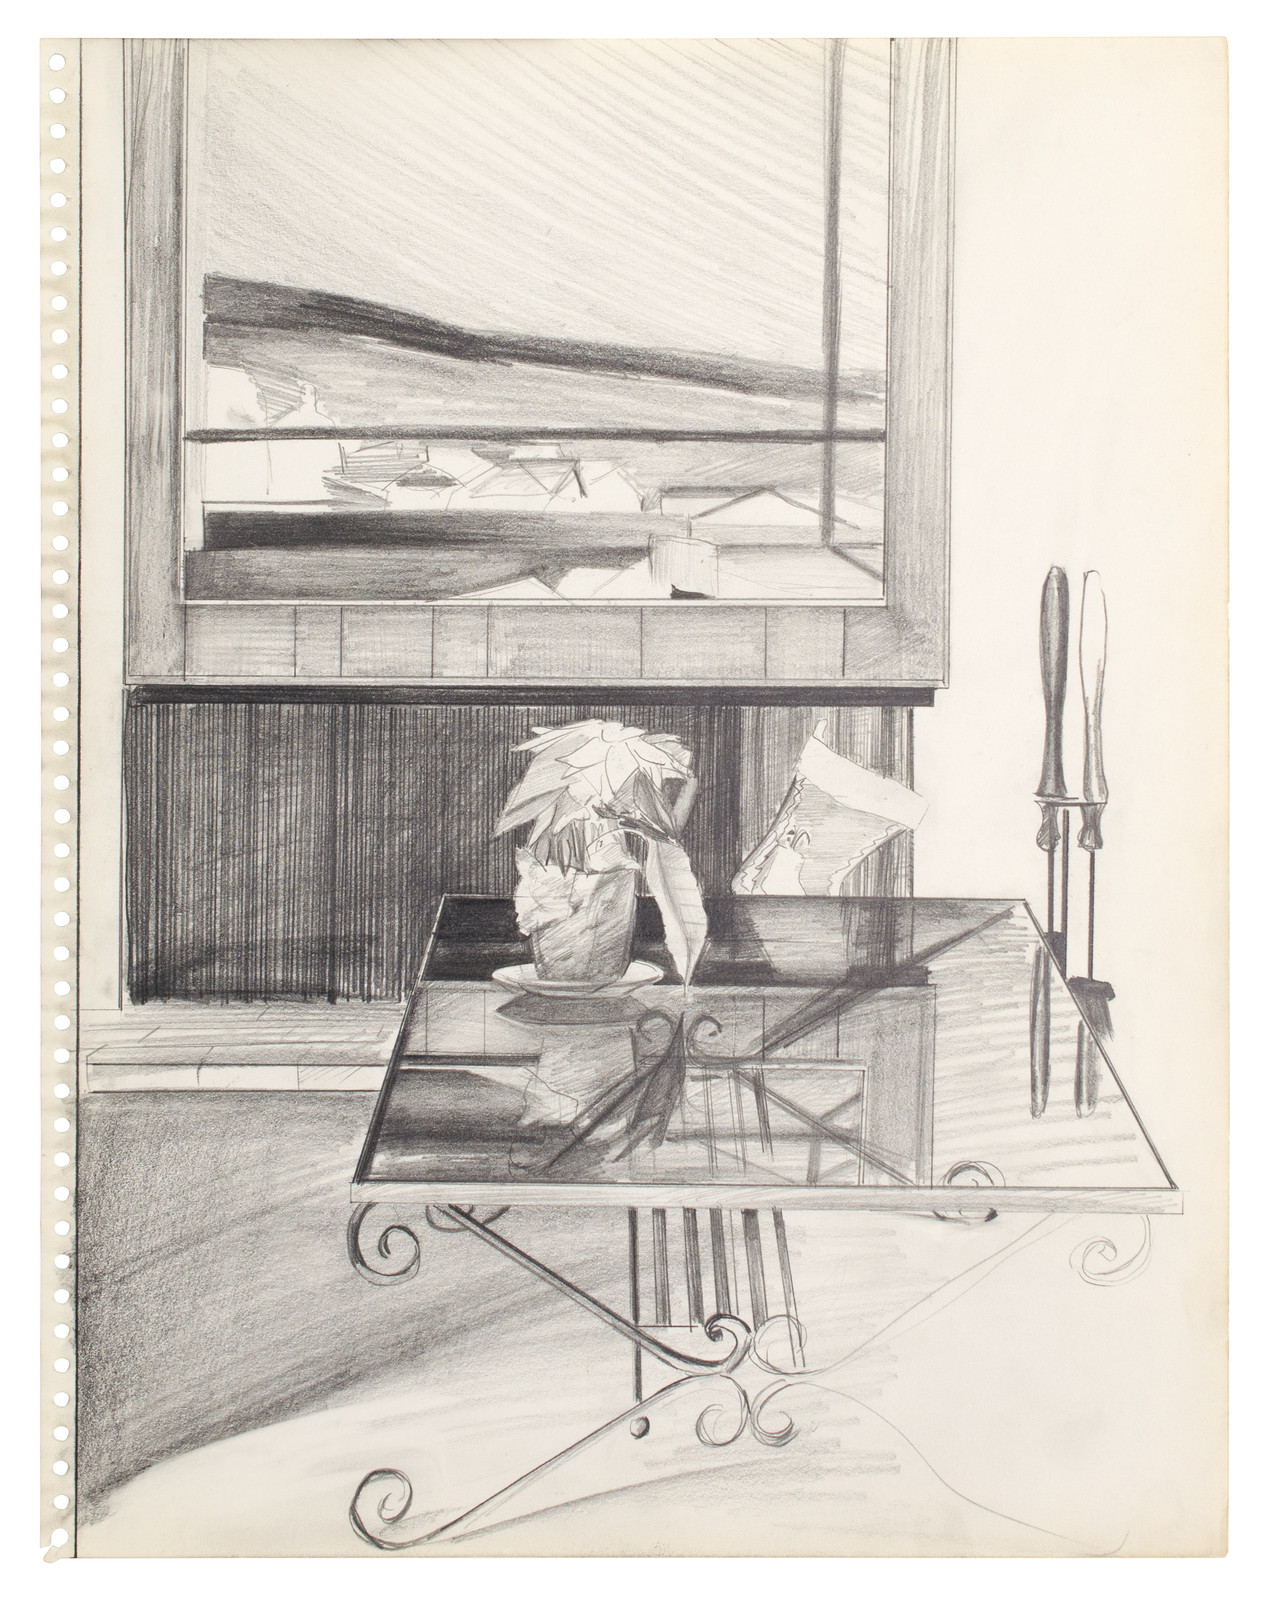 Patrick Angus, Untitled, n.a., pencil on paper, framed, 35,6 x 27,9 cm, Galerie Thomas Fuchs